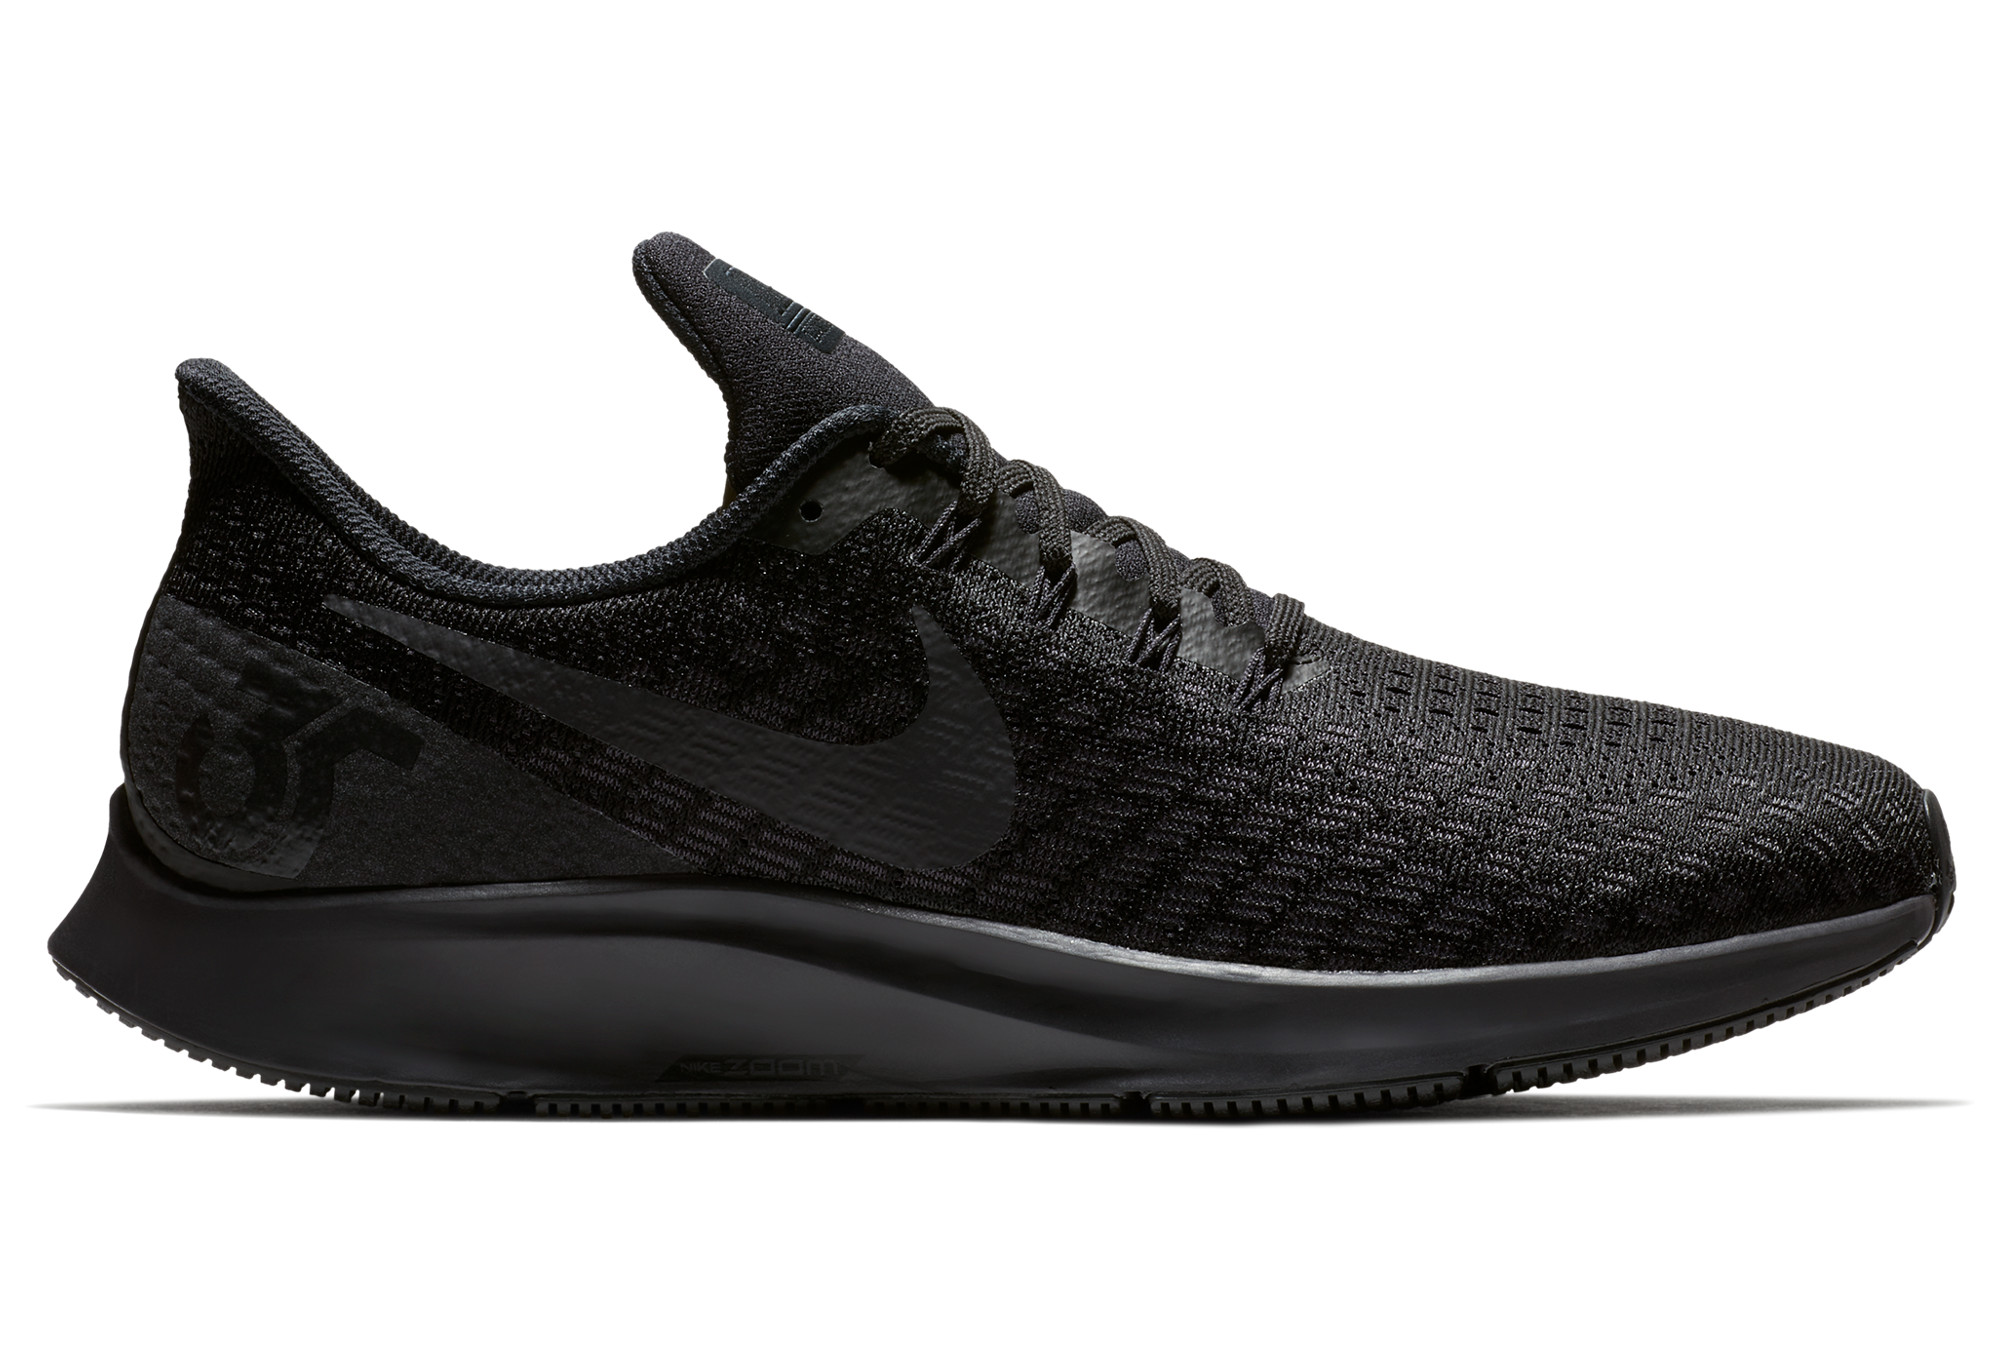 133dda7c1a3a9 Nike Shoes Air Zoom Pegasus 35 Black Men